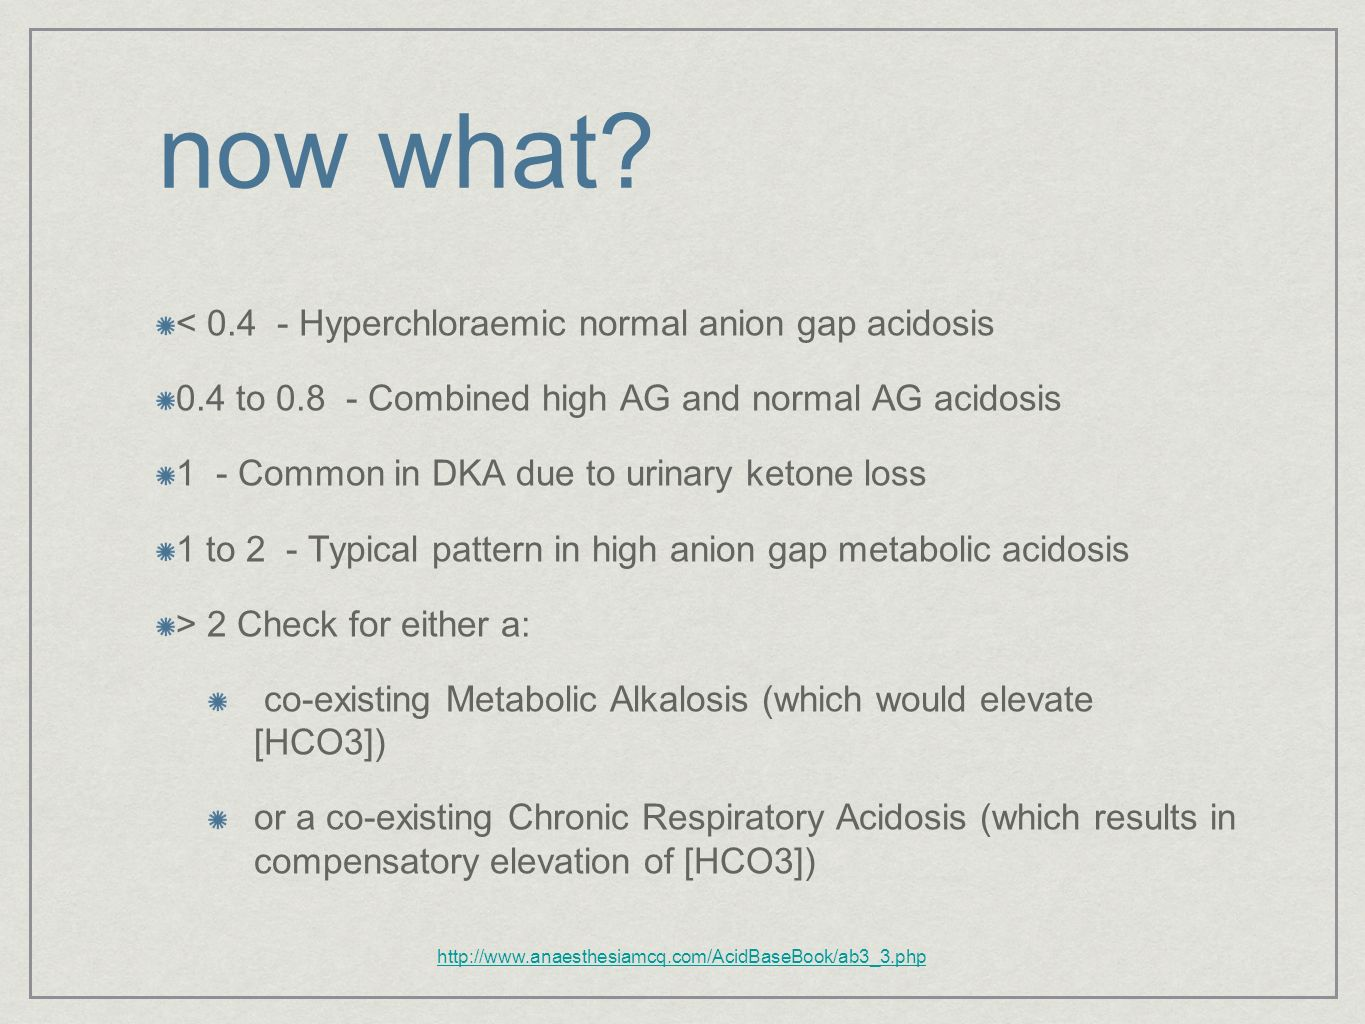 now what? < 0.4 - Hyperchloraemic normal anion gap acidosis 0.4 to 0.8 - Combined high AG and normal AG acidosis 1 - Common in DKA due to urinary keto